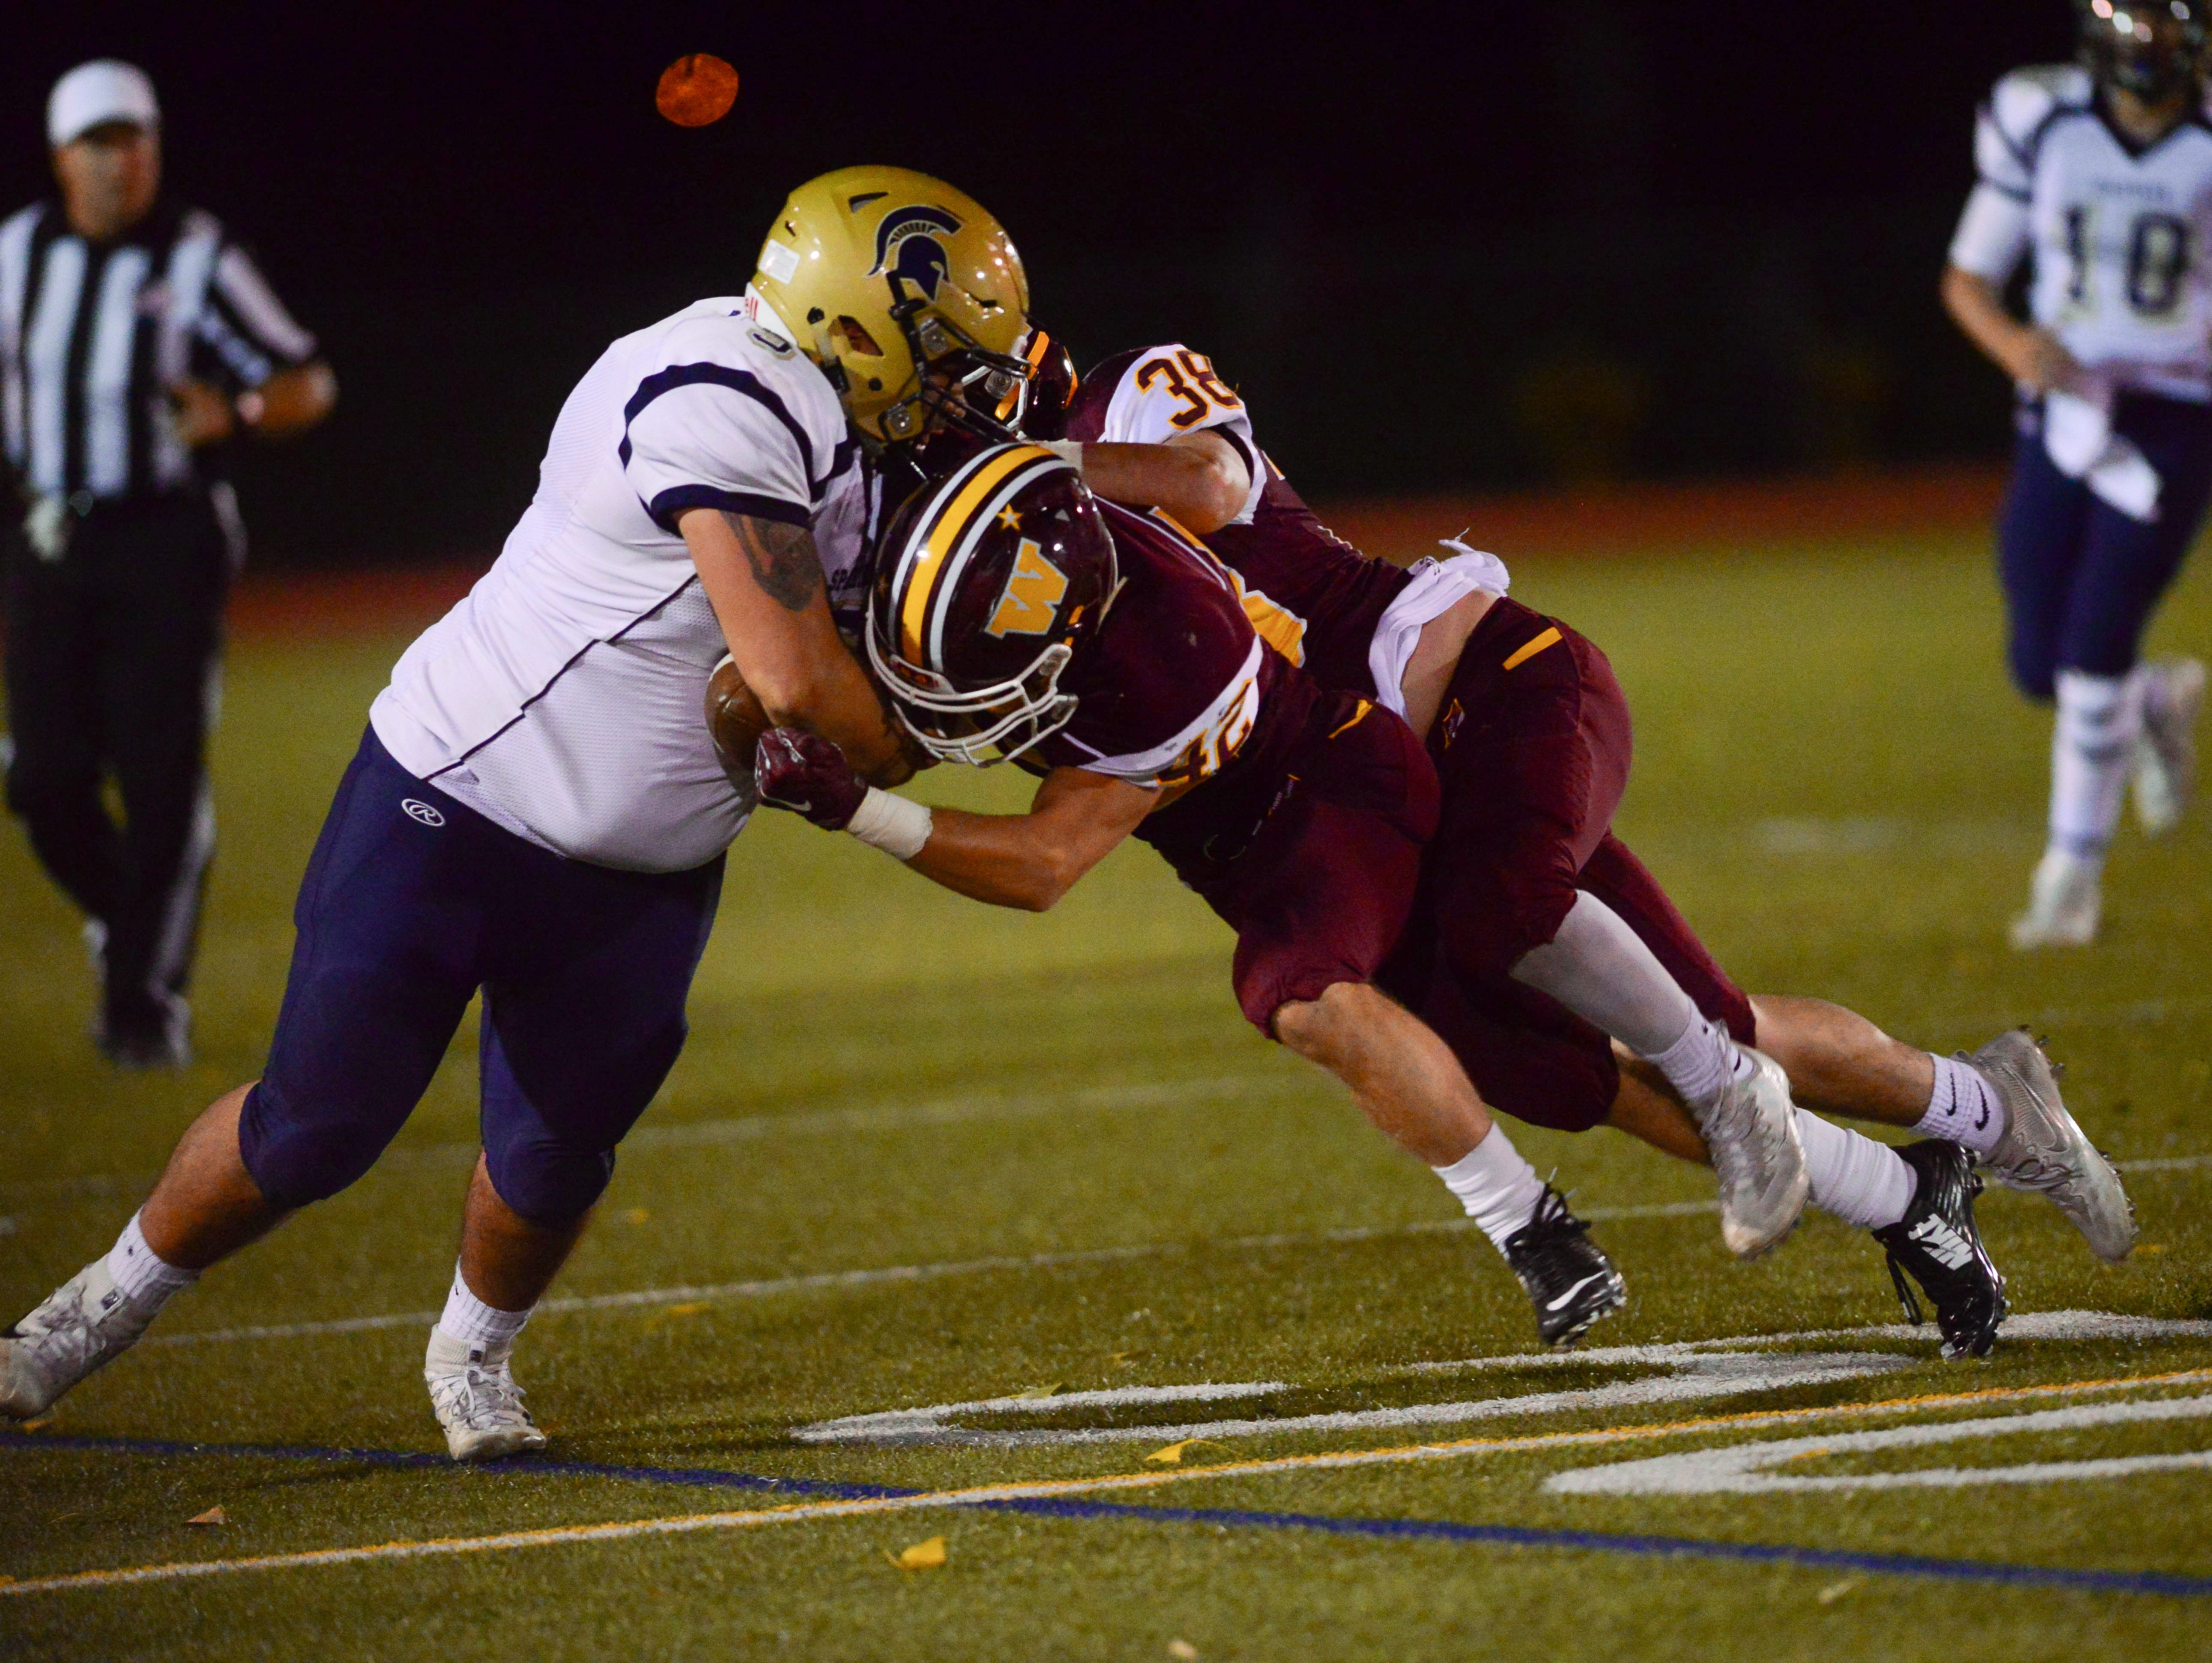 Windsor linebackers Tony Carr and Nate Cole take down Greeley fullback Devin Sirio during the game at Windsor High School Friday, September 23.